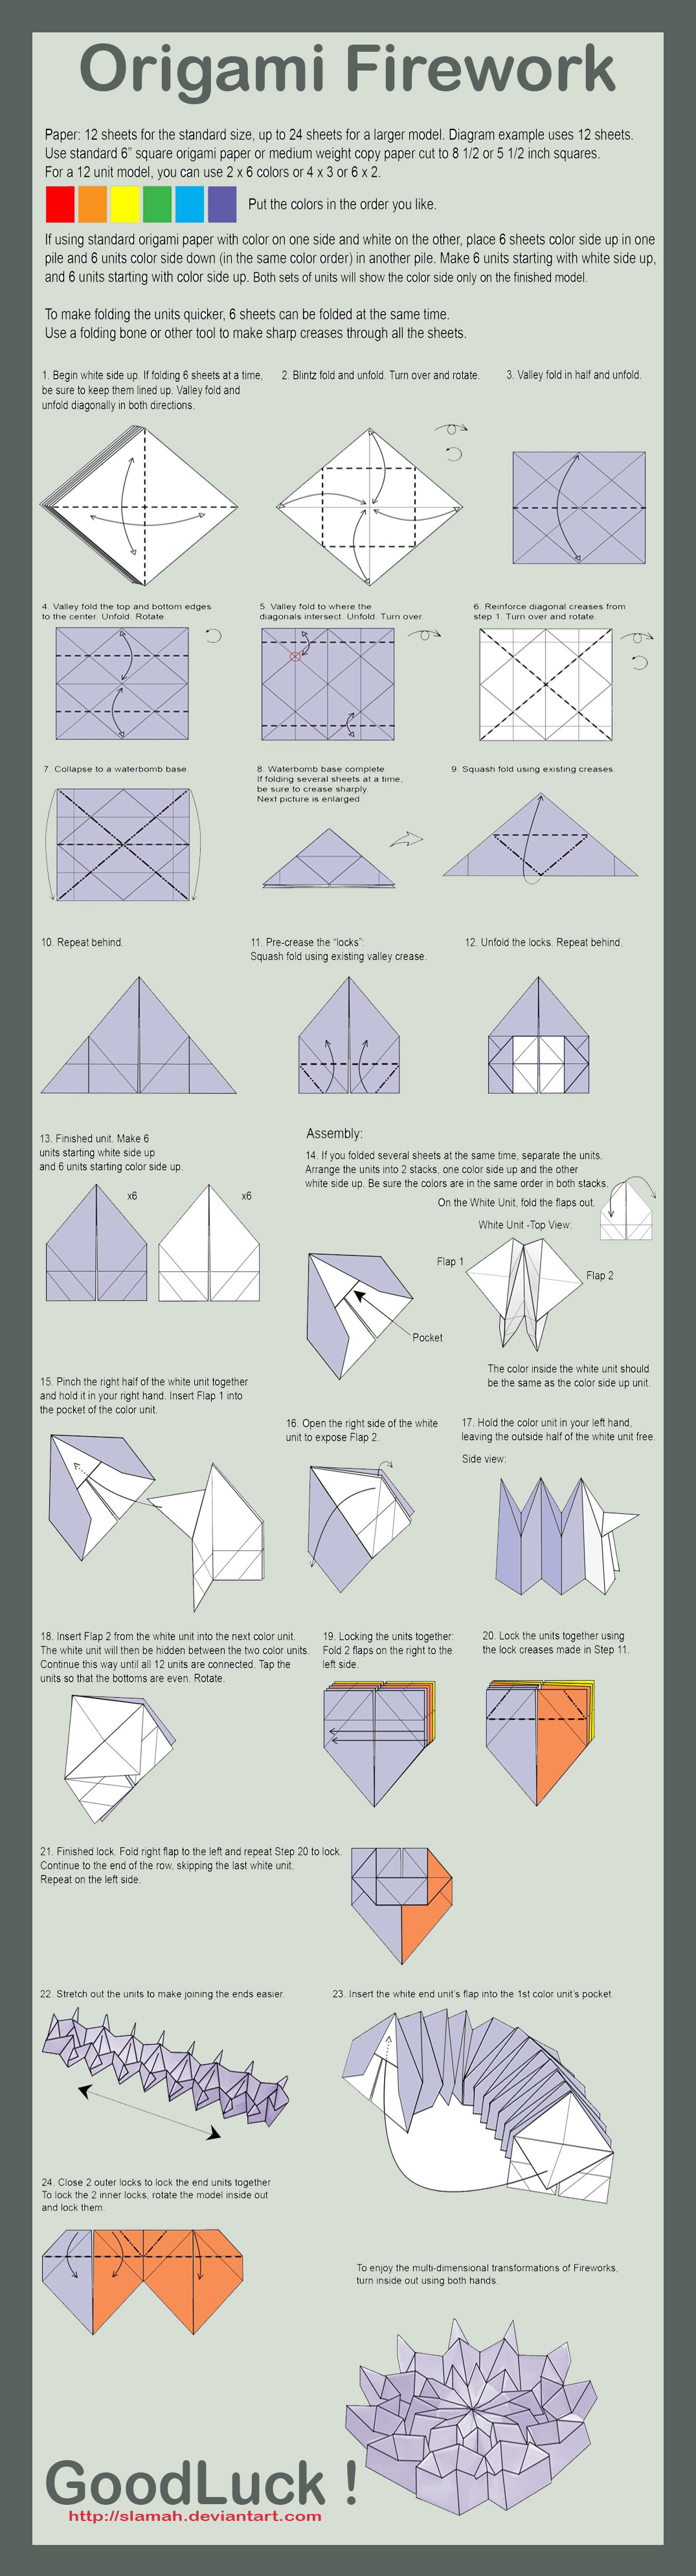 origami fireworks instructions